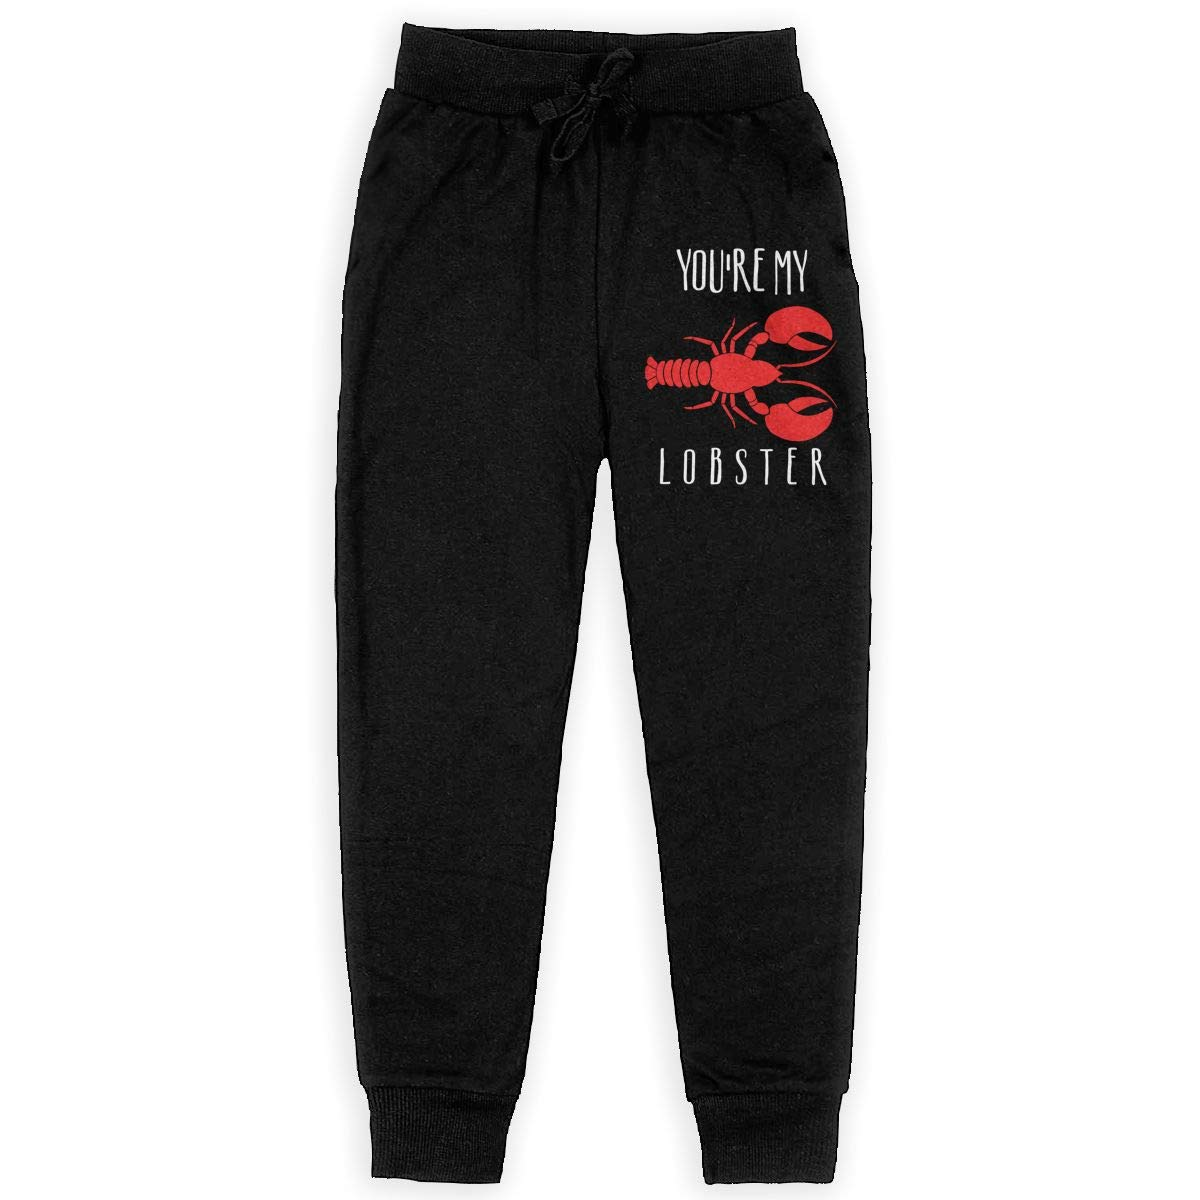 Youre My Lobster Youth Sweatpants Teen Fleece Pants Boys Athletic Pants Black